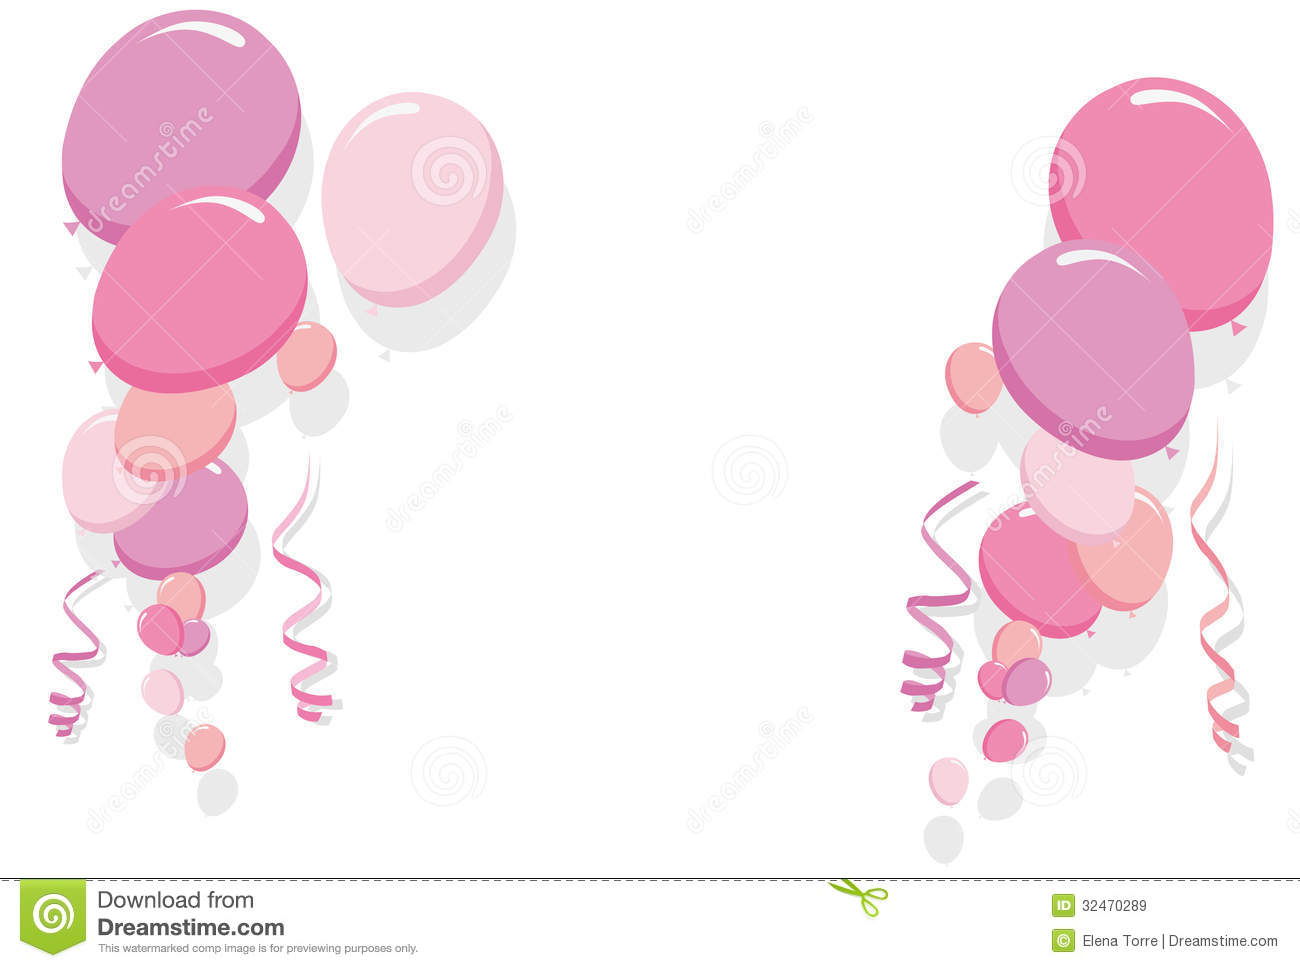 birthday card borders free ; pink-balloons-border-frame-illustration-girl-birthday-cards-party-card-32470289